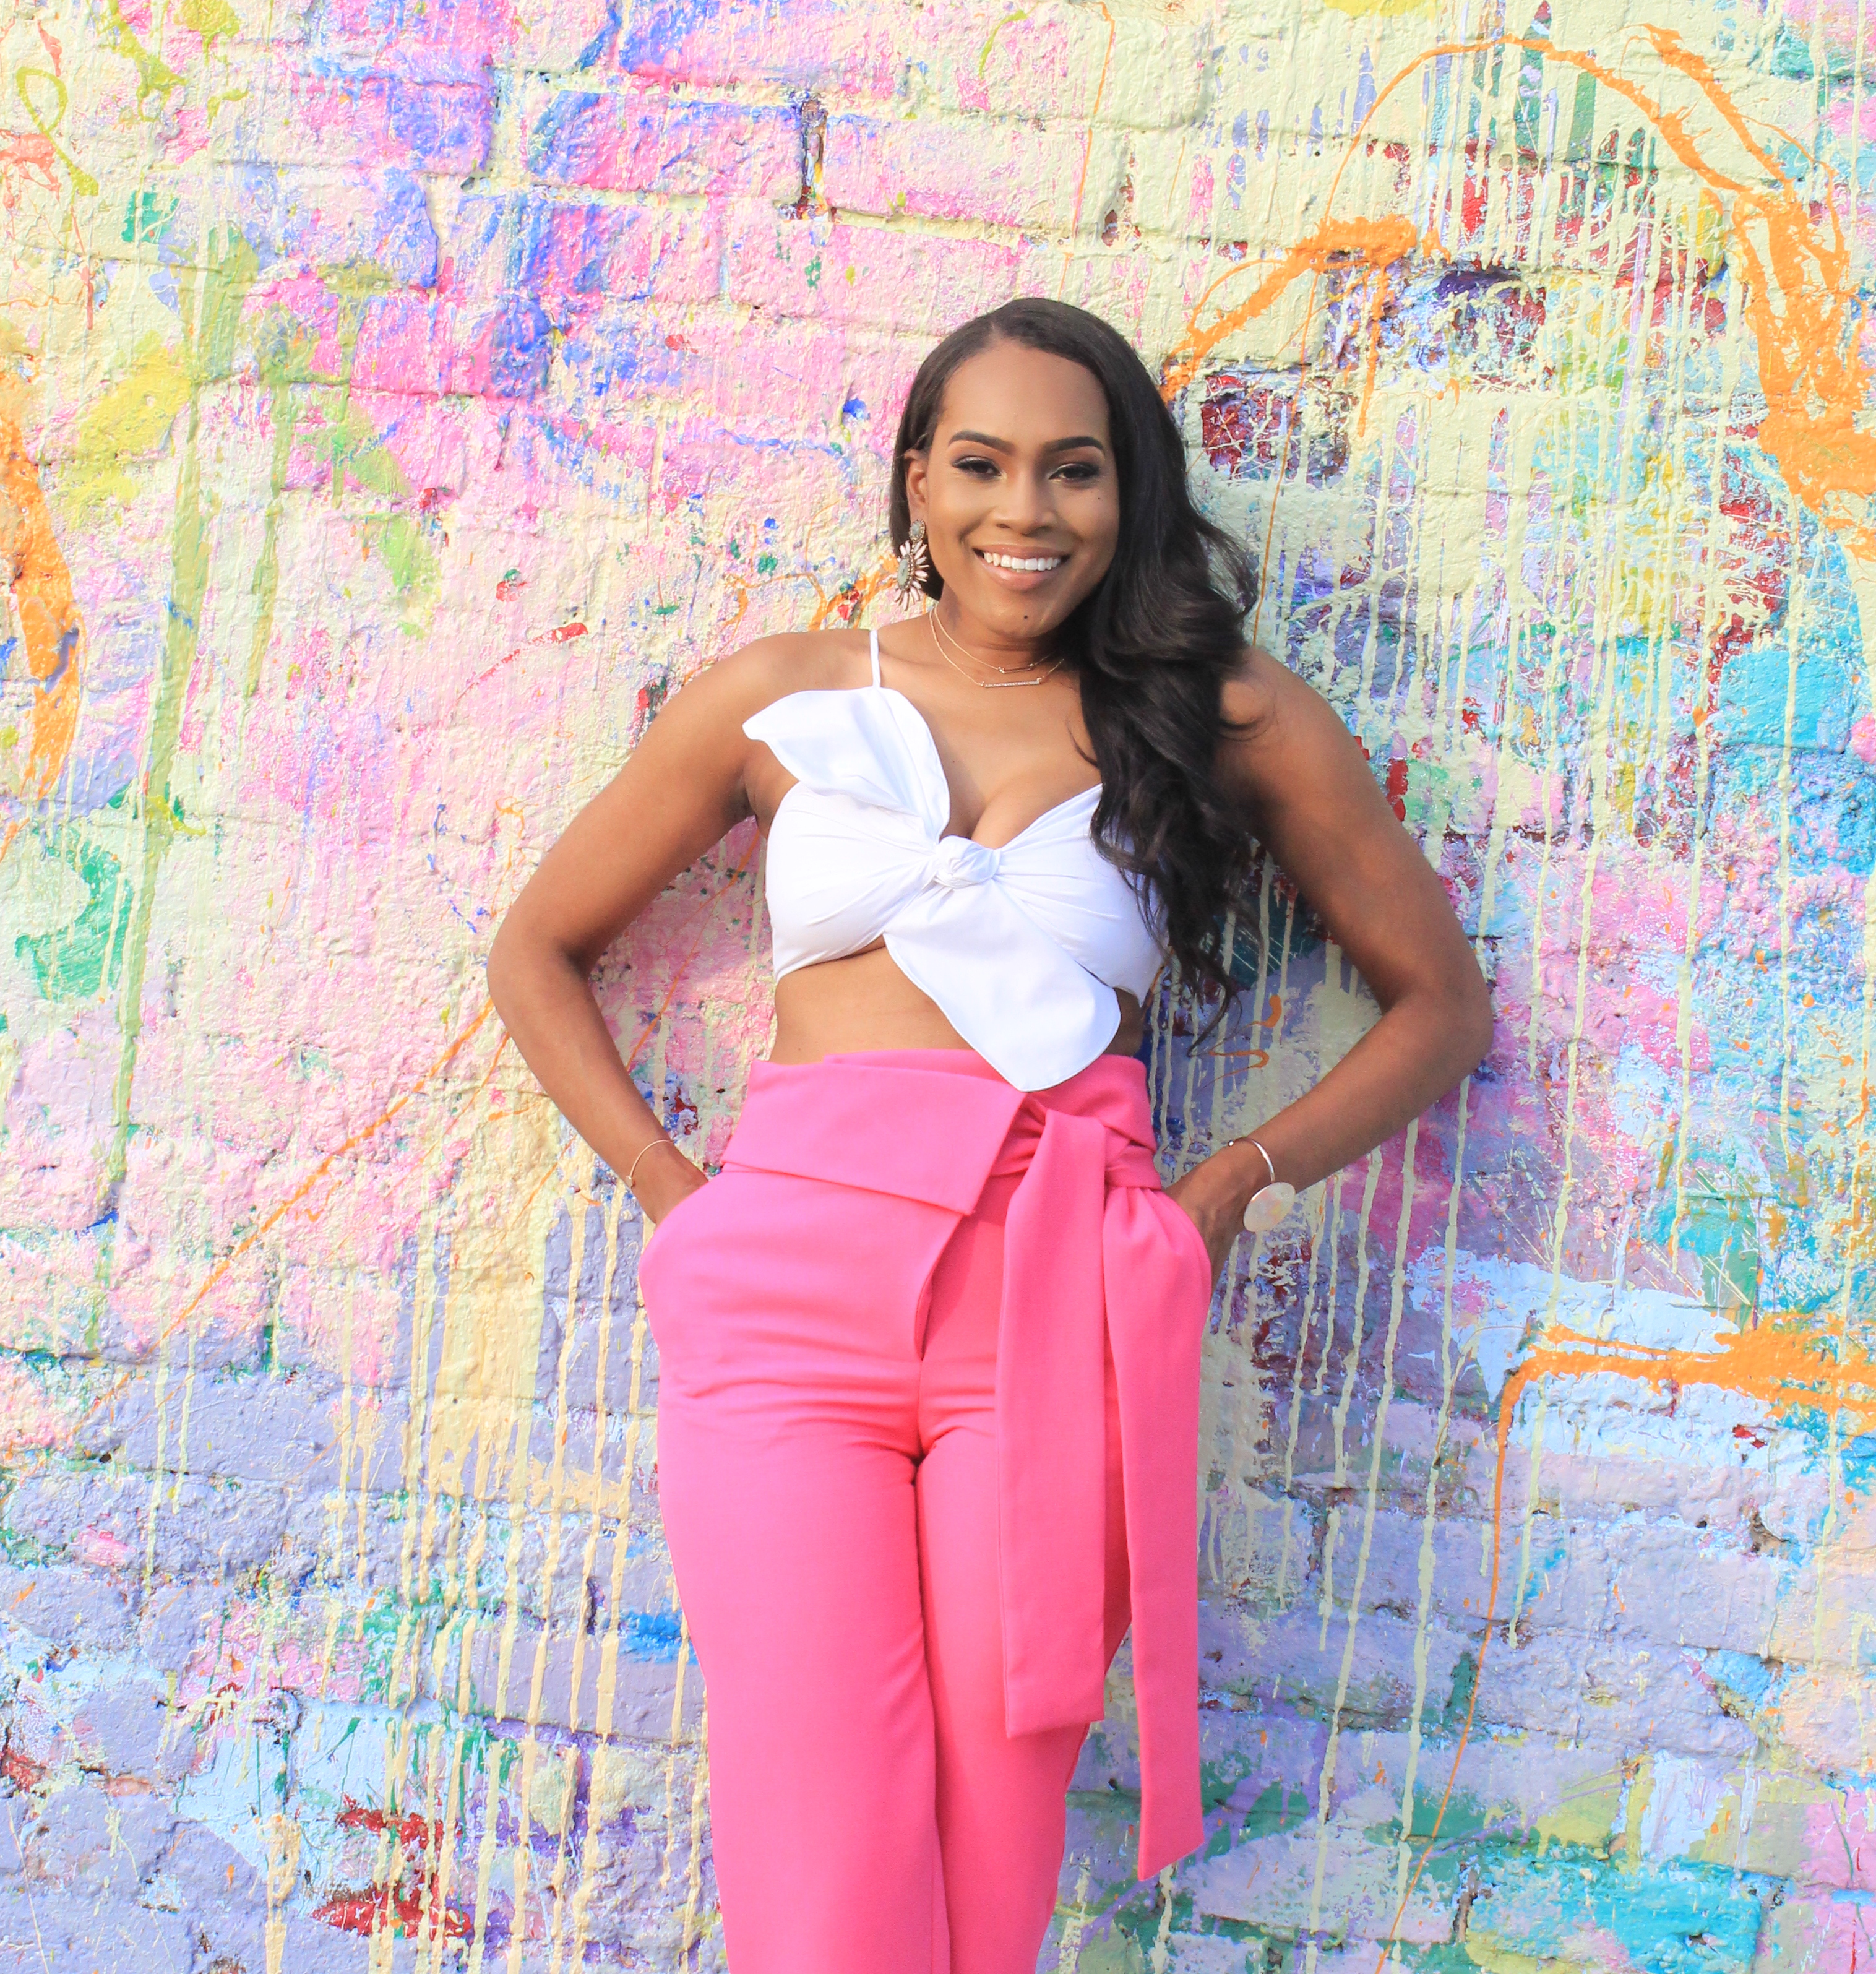 Style files-Hot-pink-asos-pants-with-origami-waist-tie-detail-truffle-collection-barely-there-heel-sandal-rose-gold-forever-21-contemporary-white-cropt-top-perfect-summer-pants-top-birmingham-bloggers-oohlalablog-4